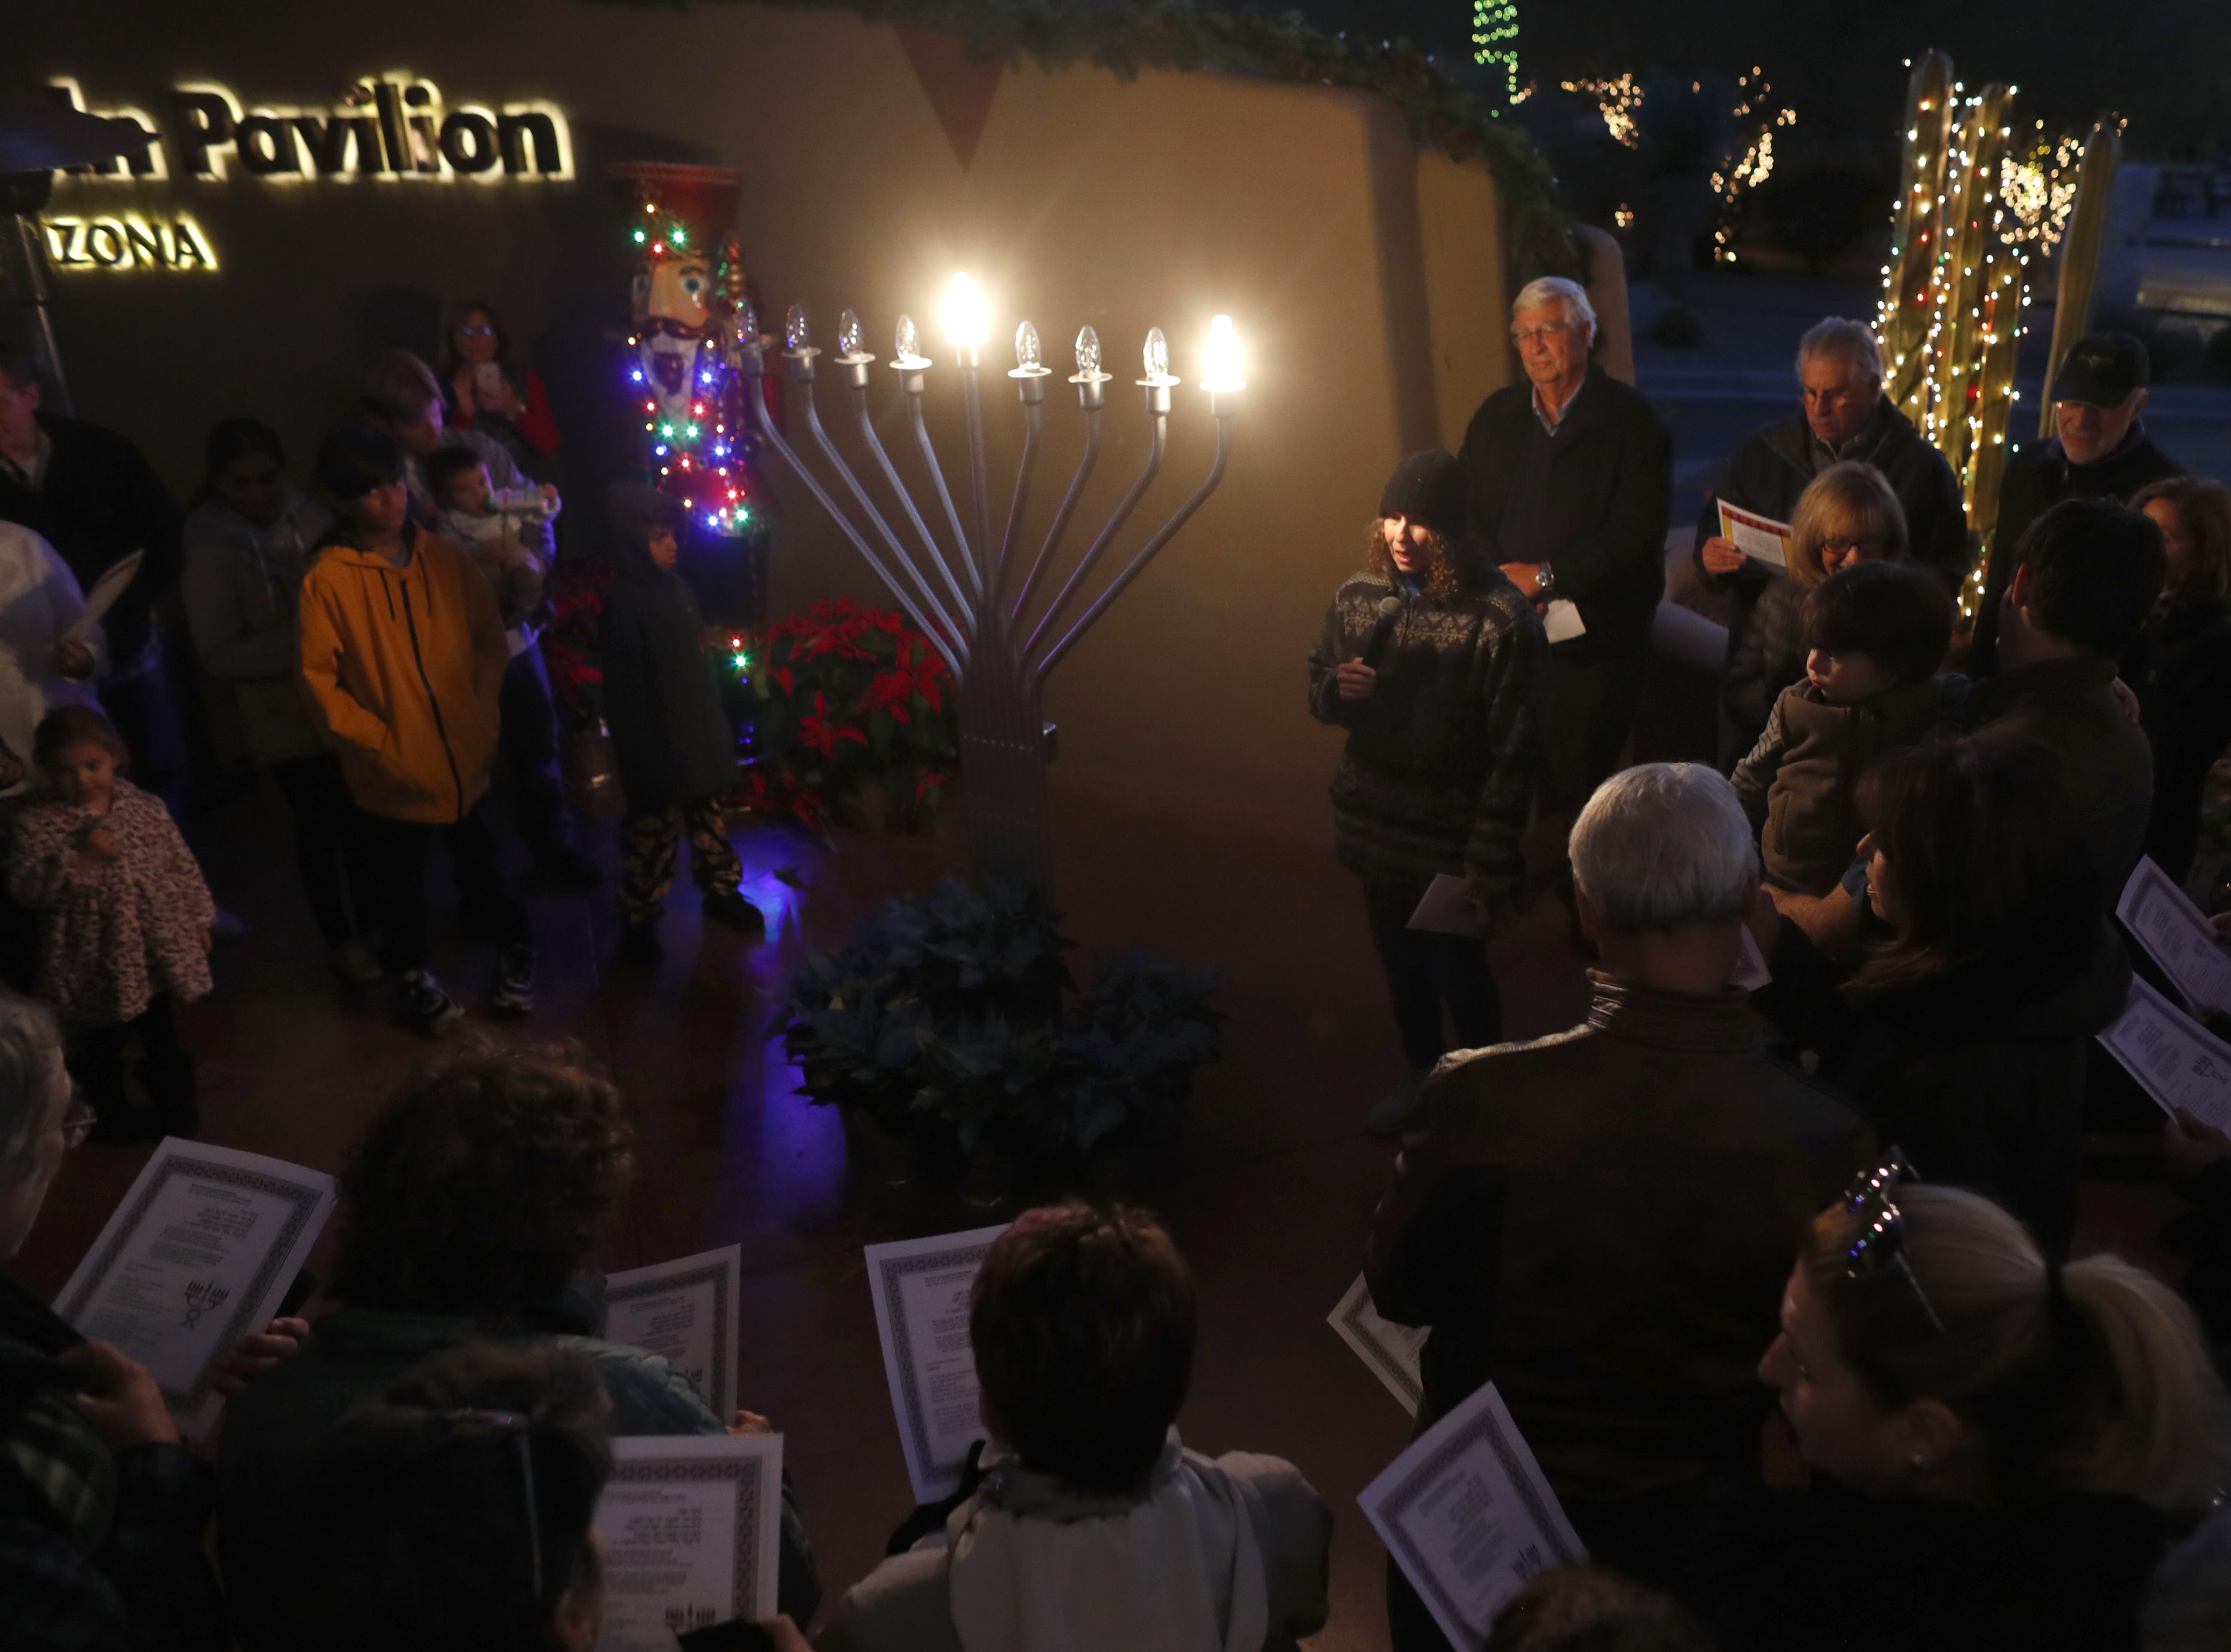 Ora Kurland leads people in song during a Menorah Lighting Ceremony on the first night of Hanukkah at Carefree Desert Gardens in Carefree, Ariz. on December 2, 2018.